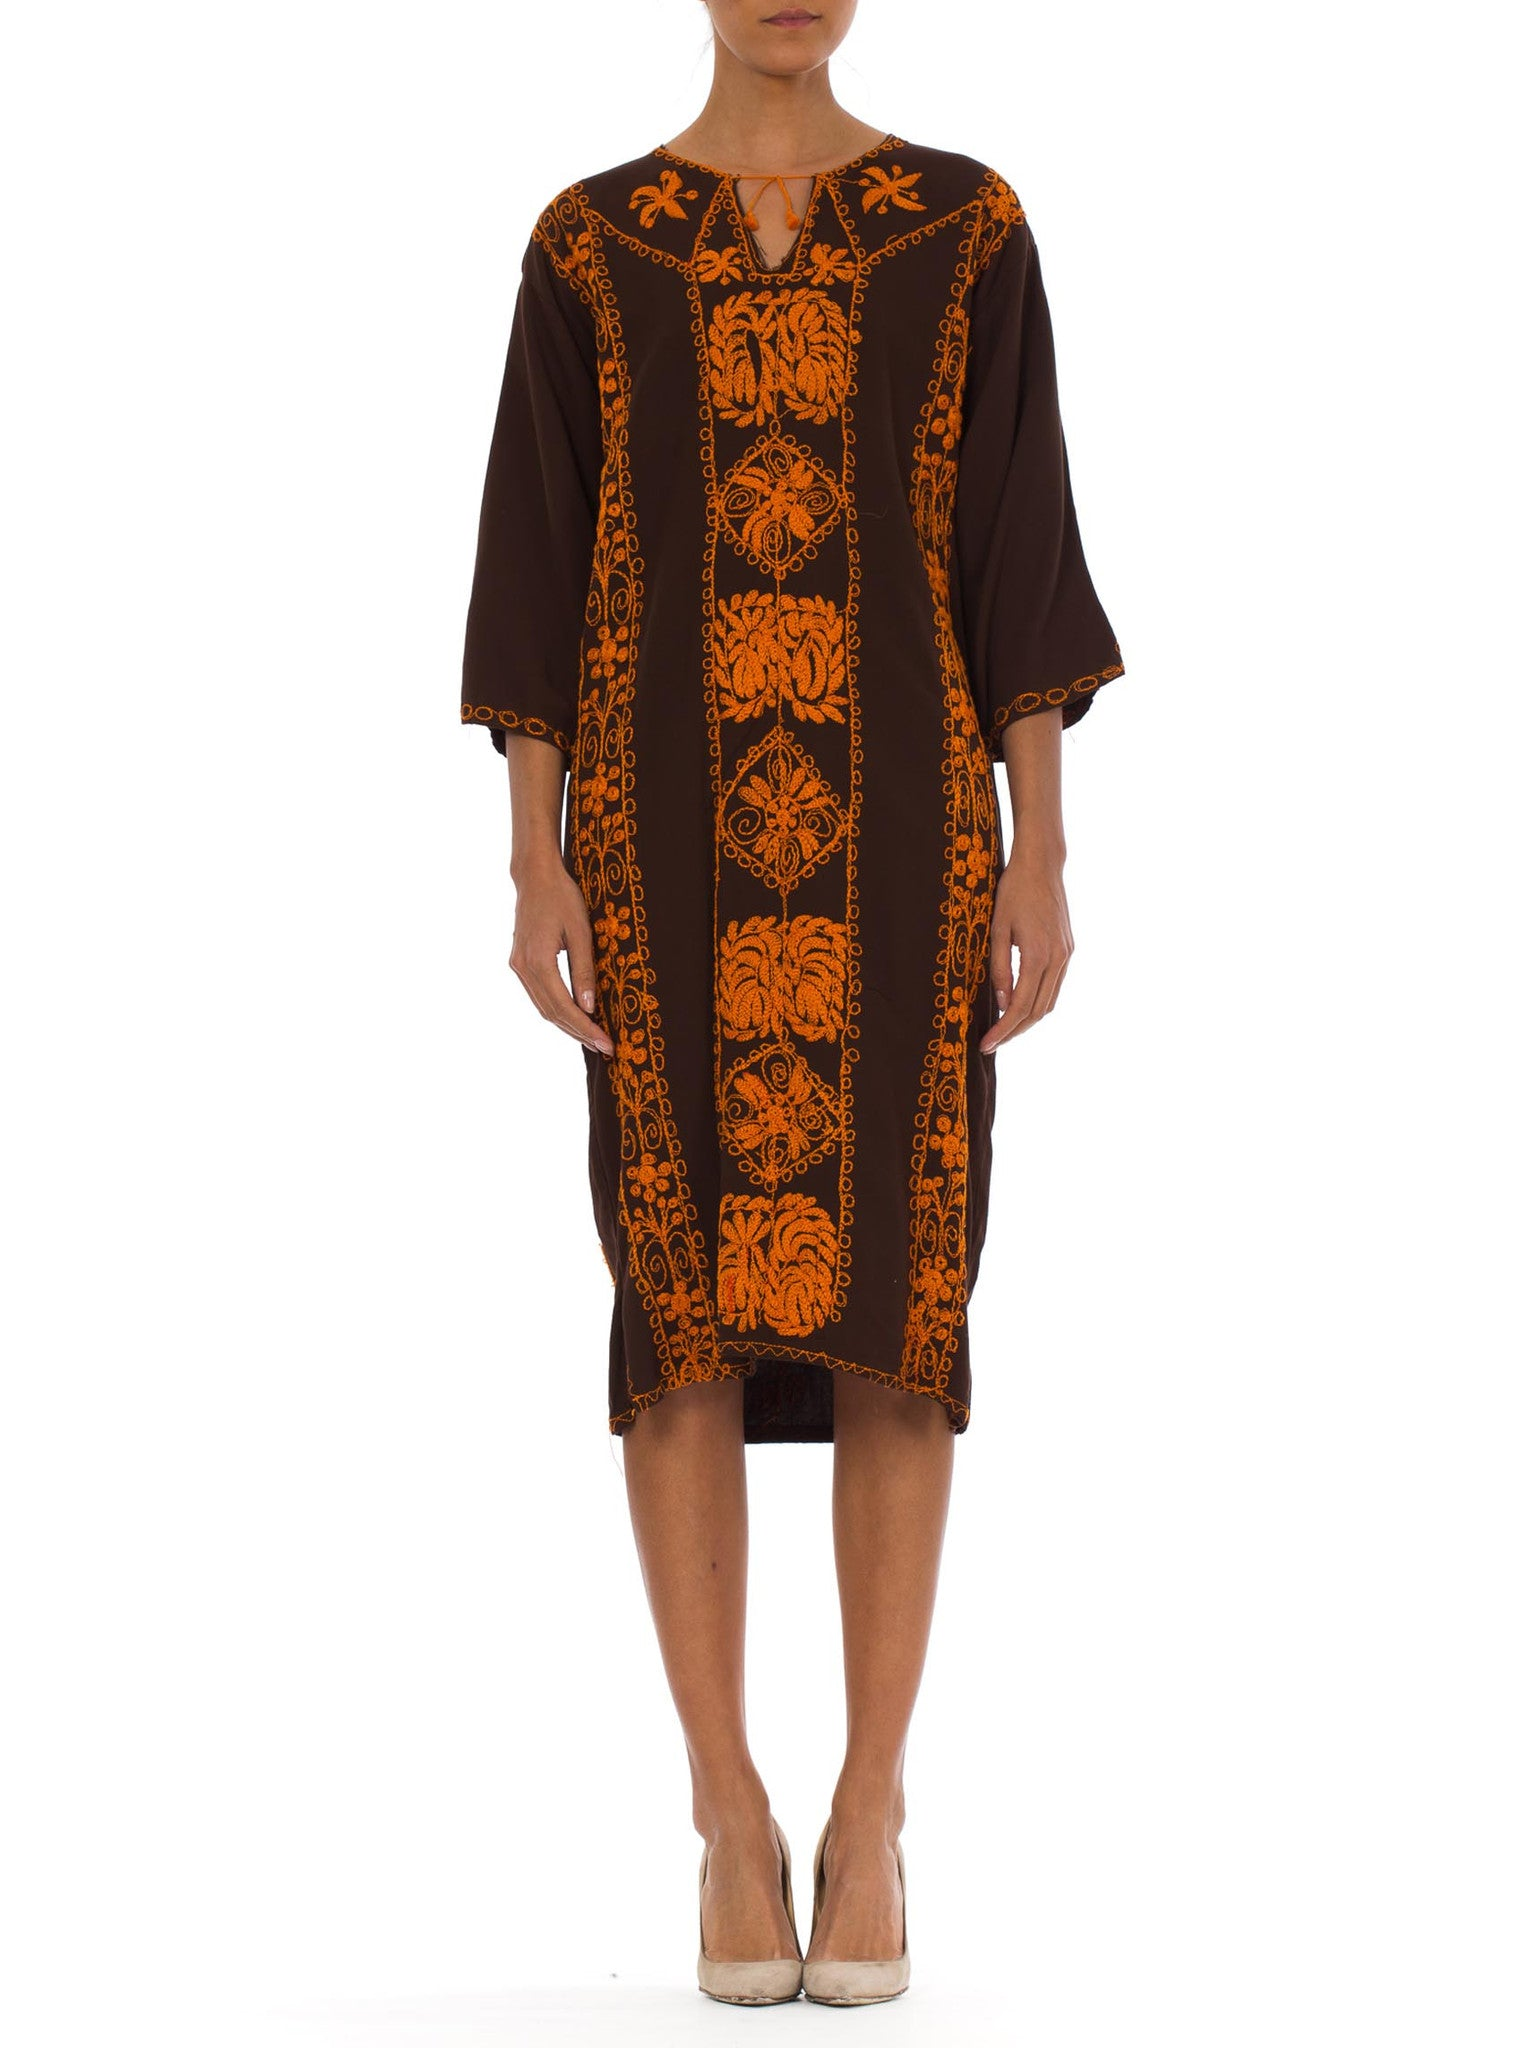 1970s Boho Ethnic Hand Embroidered Brown Caftan Dress